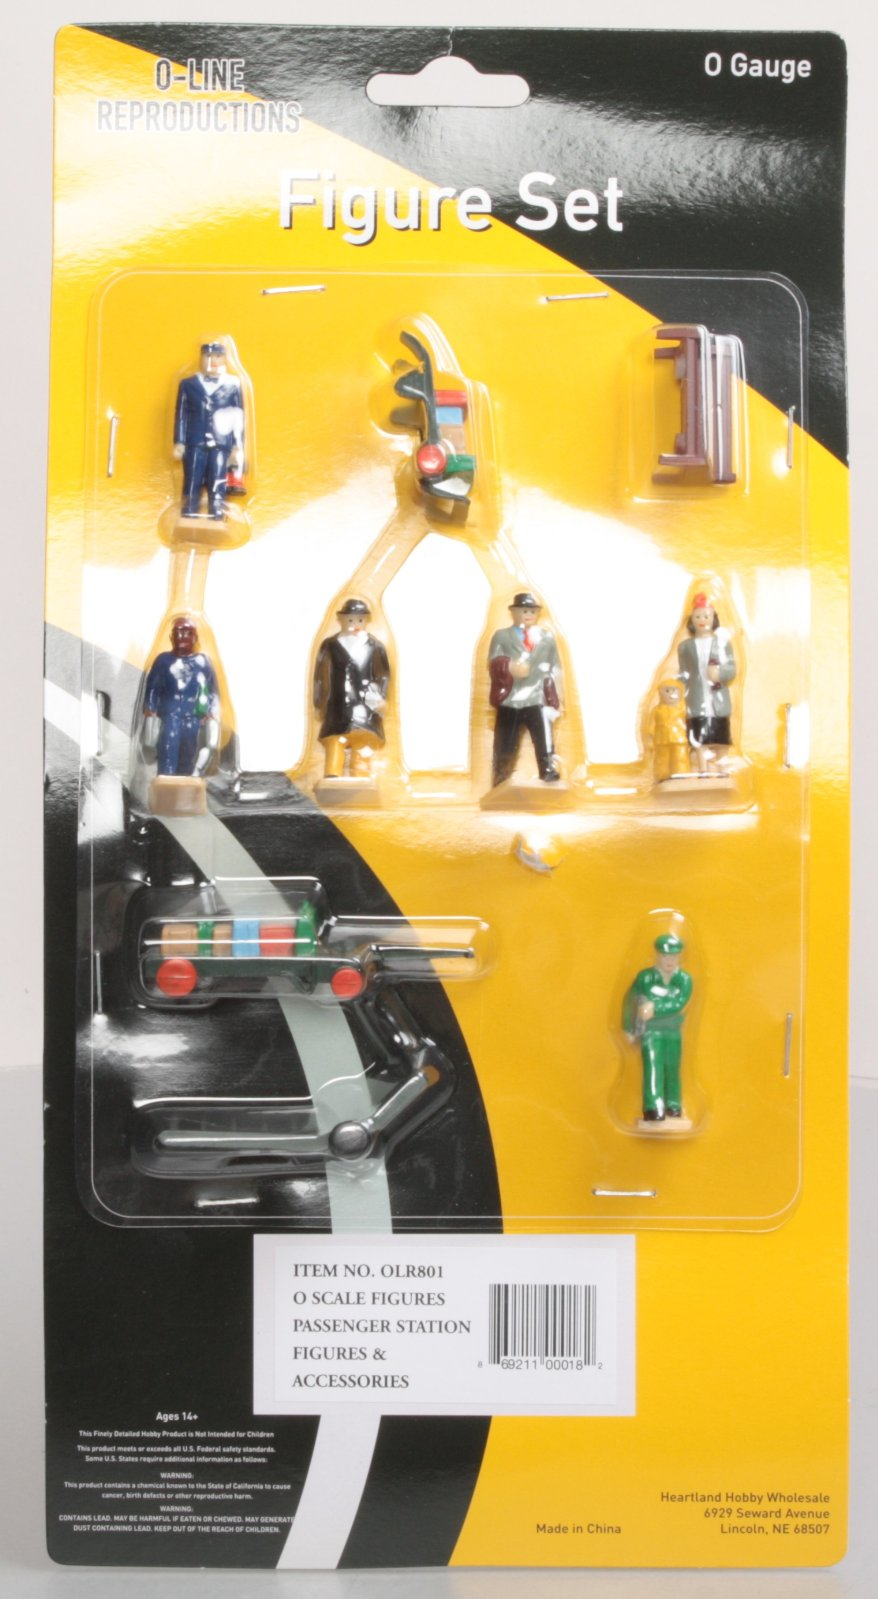 O-Line 801 Passenger Station Figures and Accessories Set (10) This is an O-Line 801 Passenger Station Figures and Accessories Set (10). These figures are fully painted in an assortment of clothing colors that will enable you to populate your passenger station platforms and buildings to enhance your toy train layout. Each individual person is hand painted in a realistic/non-shiny finish with full facial features and clothing details that are truly realistic in appearance.Condition: Factory New (C-9All original; unused; factory rubs and evidence of handling, shipping and factory test run.Standards for all toy train related accessory items apply to the visual appearance of the item and do not consider the operating functionality of the equipment.Condition and Grading Standards are subjective, at best, and are intended to act as a guide. )Operational Status: FunctionalThis item is brand new from the factory.Original Box: Yes (P-9May have store stamps and price tags. Has inner liners.)Manufacturer: O-LineModel Number: 801MSRP: $44.00Scale/Era: O ModernModel Type: FiguresAvailability: Ships within 3 Business Days!The Trainz SKU for this item is P12168209. Track: 12168209 - 1008-E (Suite 2740-200)  - 001 - TrainzAuctionGroup00UNK - TDIDUNK